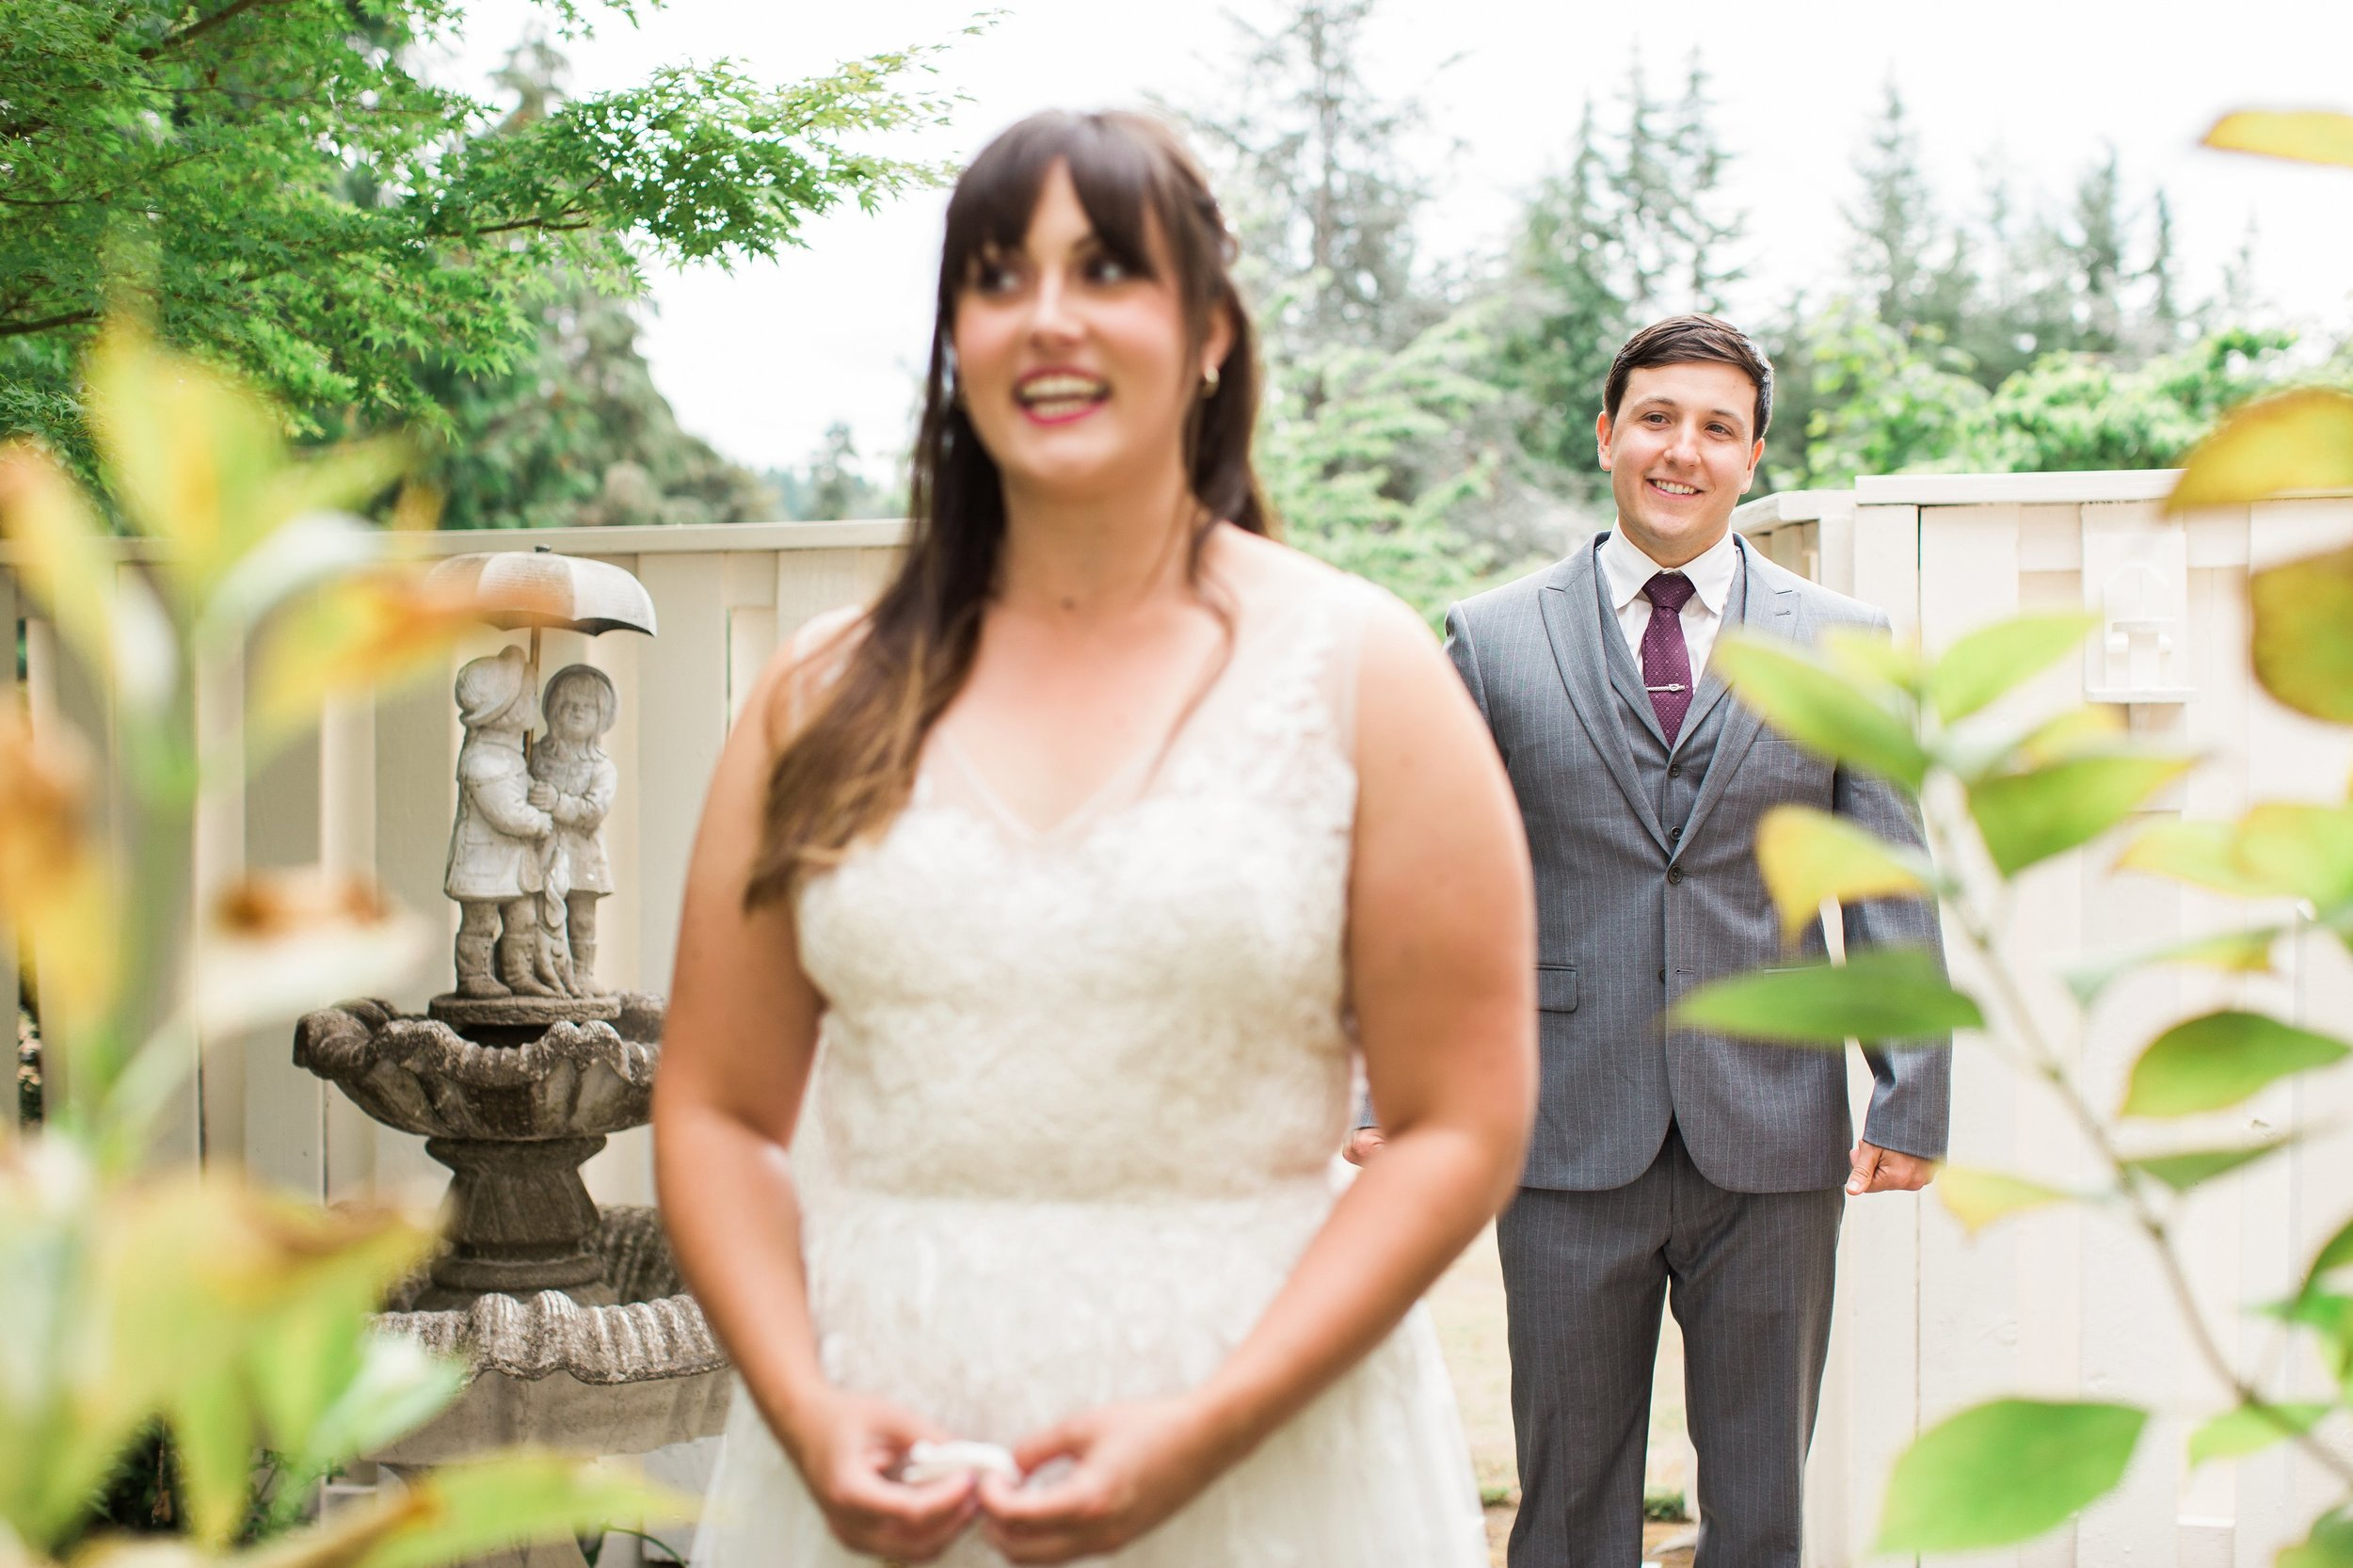 Bride waiting for first look with groom at Romantic Backyard Wedding at Private Residence in Renton WA by Seattle Wedding photographer Janelle Elaine Photography.jpg